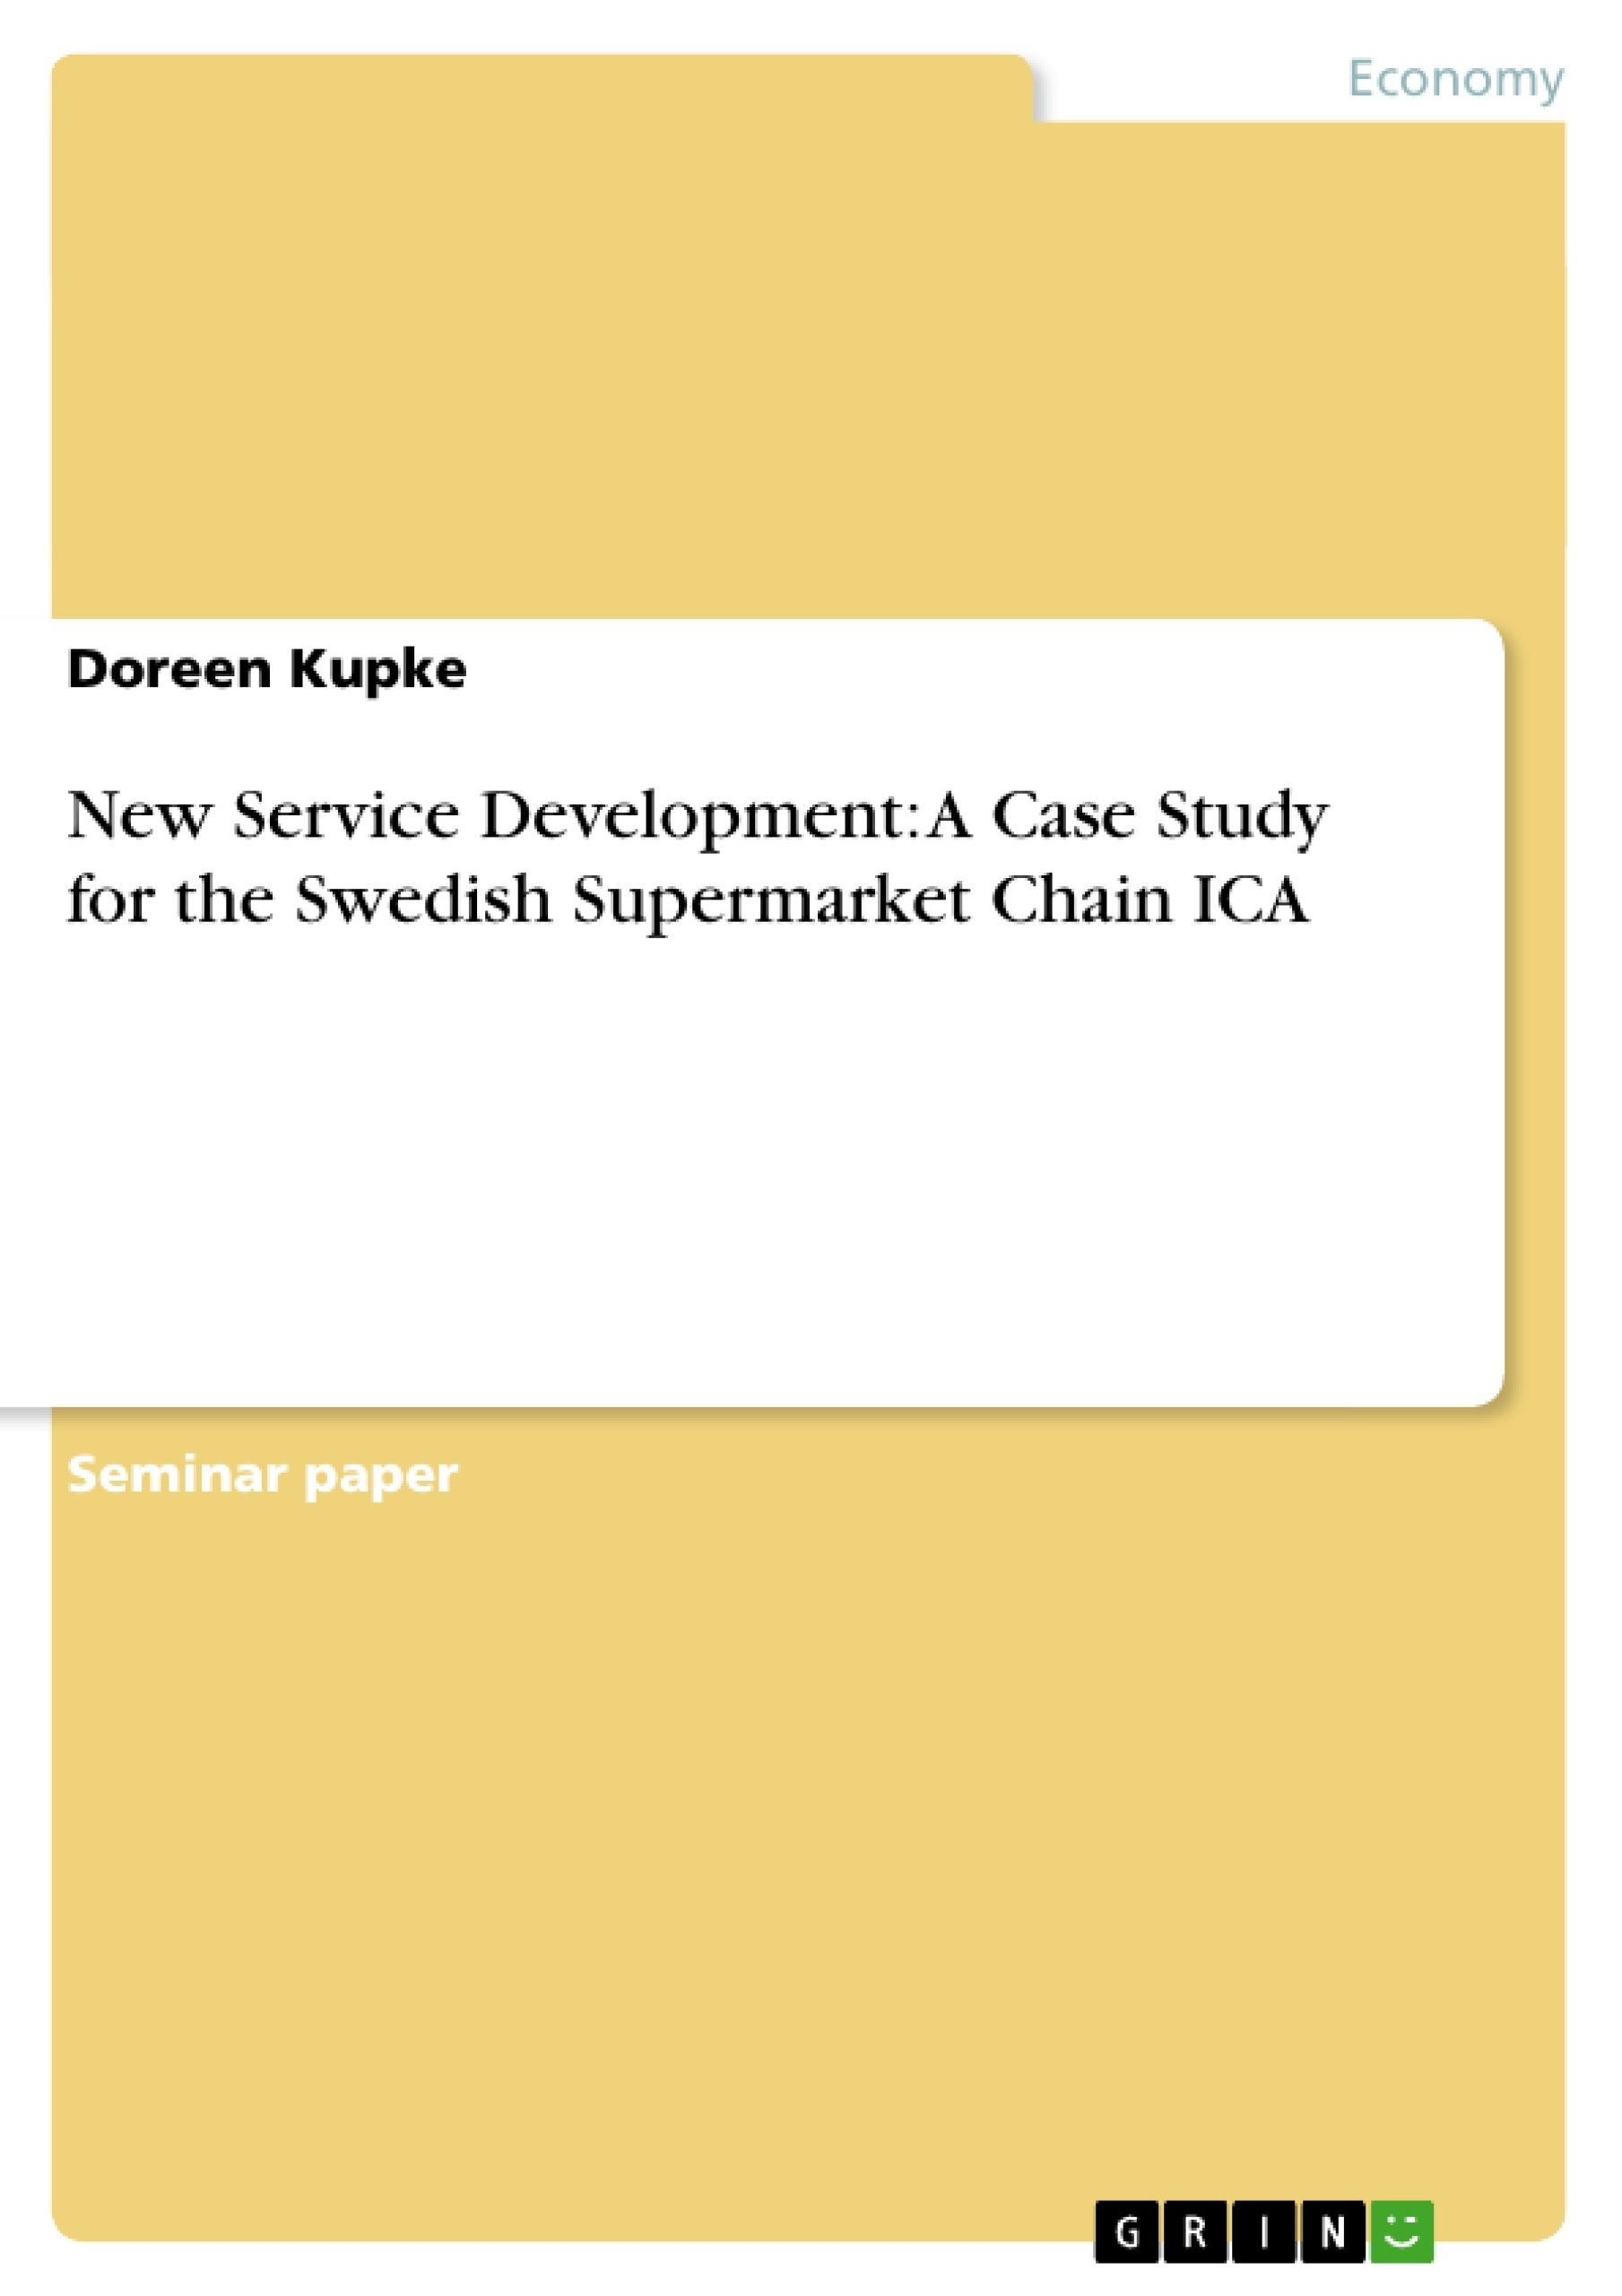 Title: New Service Development: A Case Study for the Swedish Supermarket Chain ICA